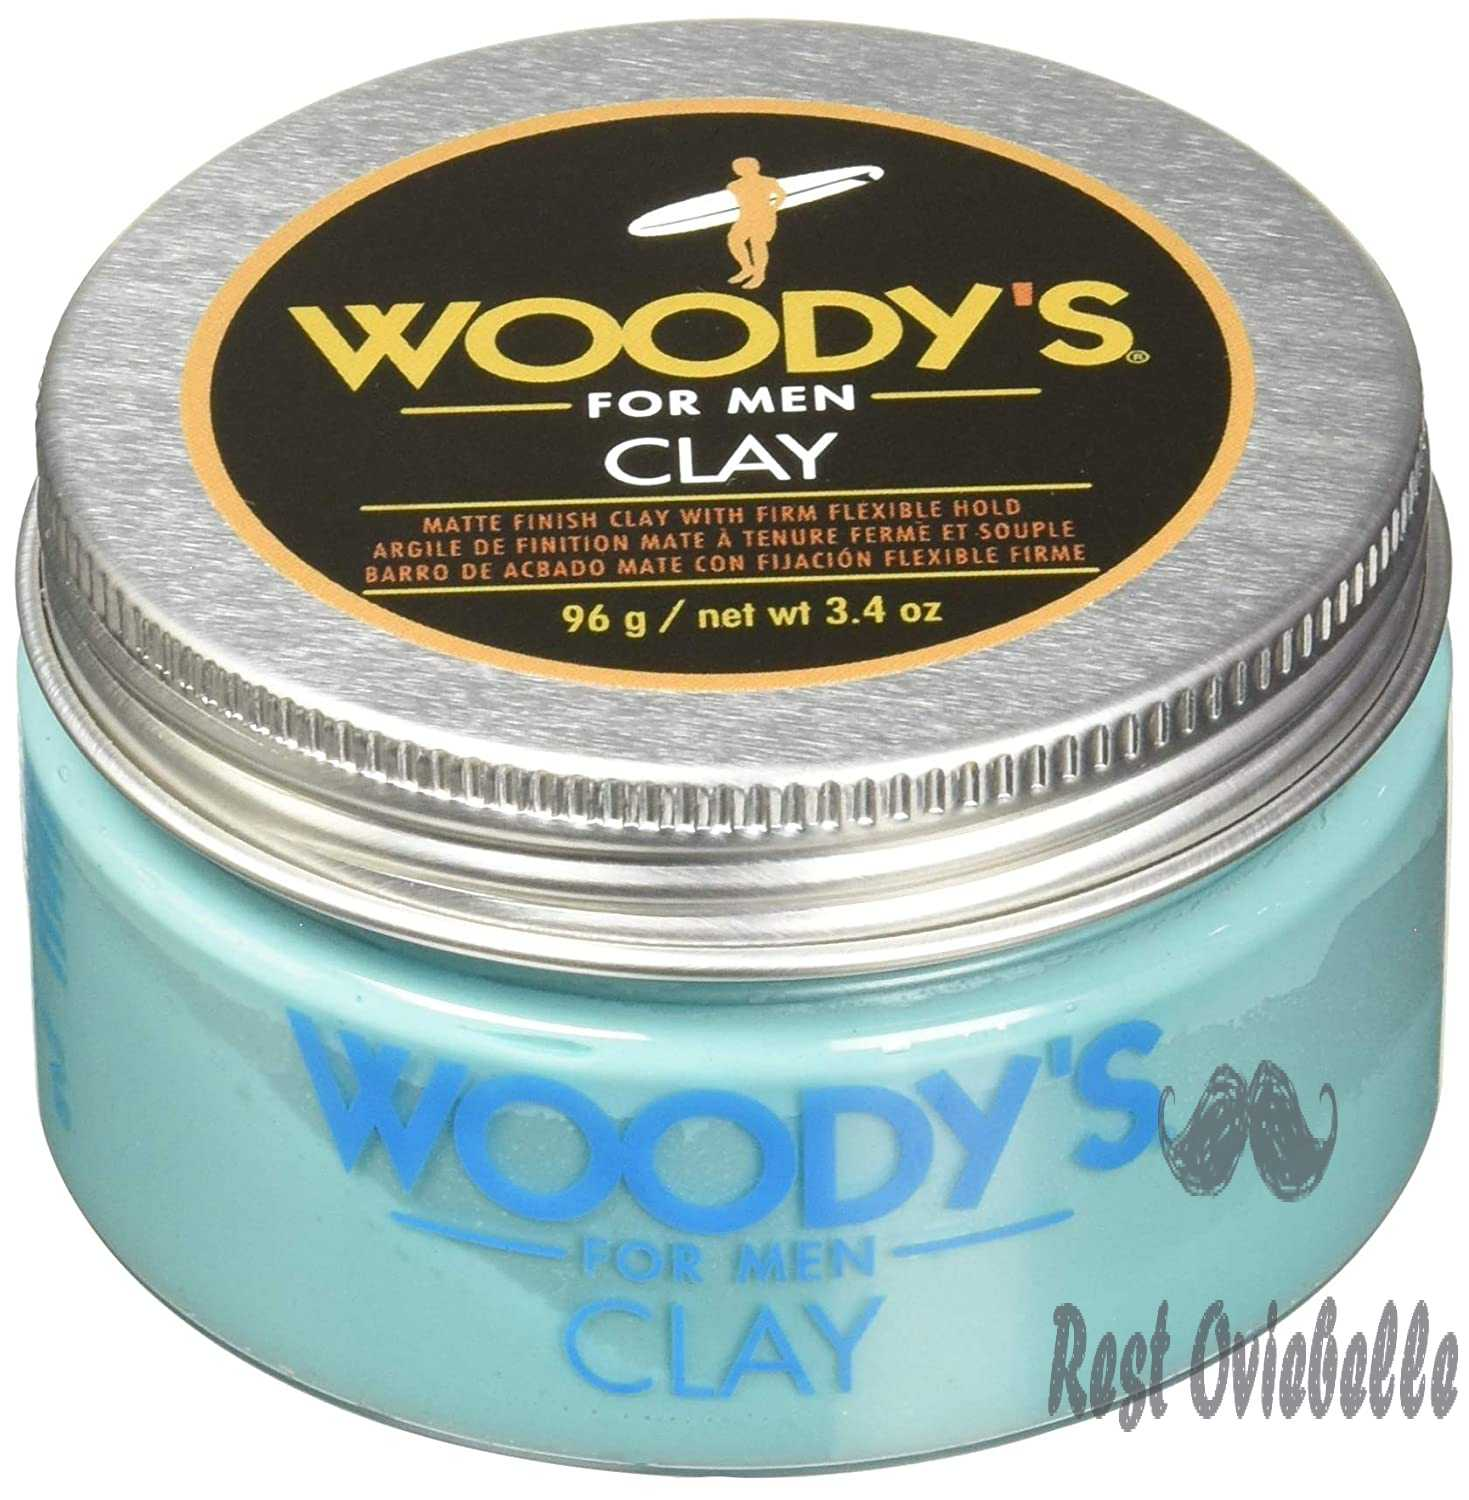 Woody's Matte Finish Clay for